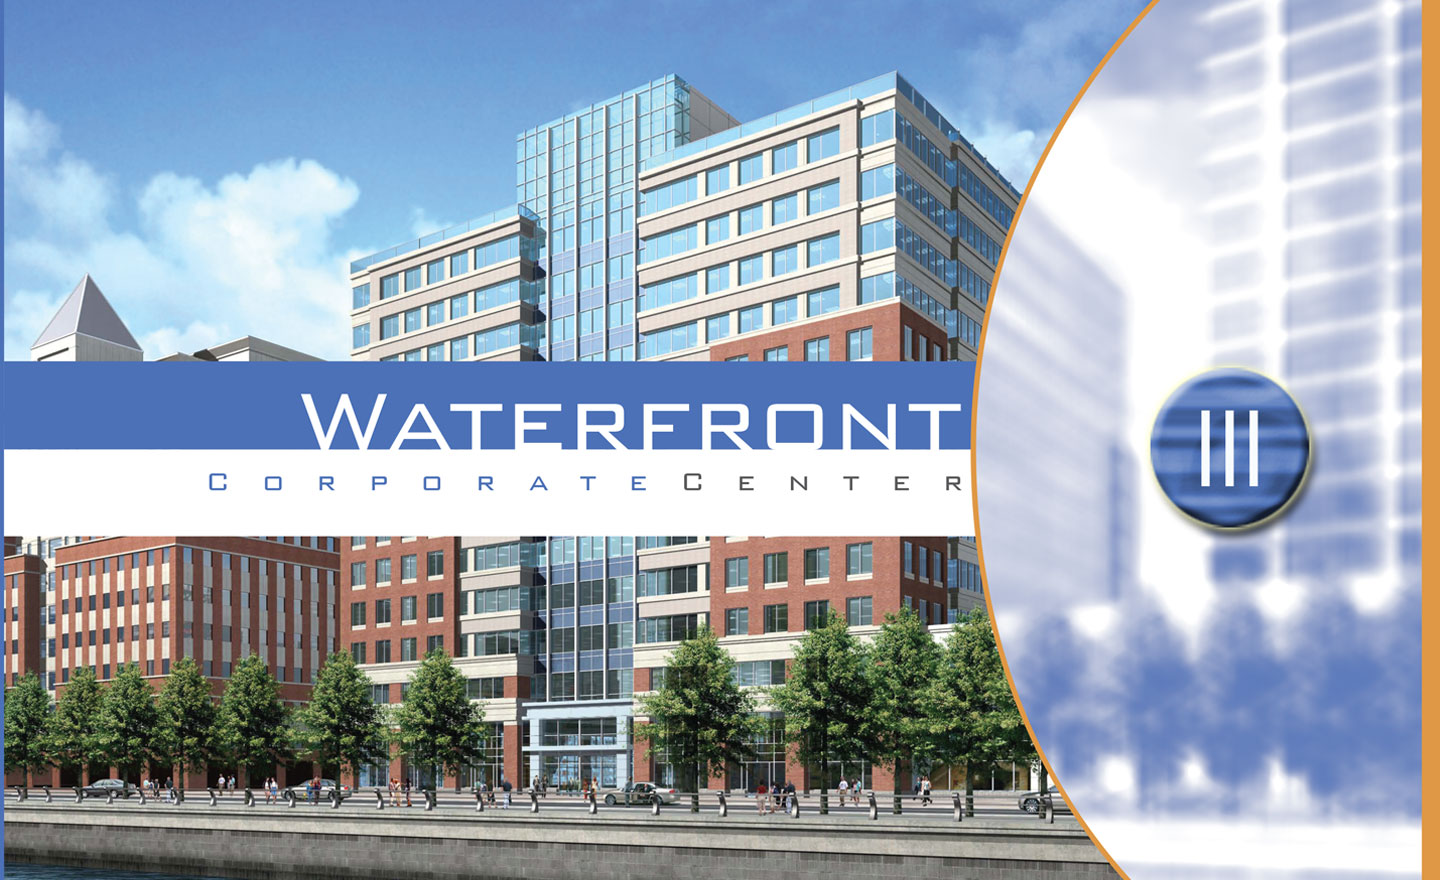 Waterfront Corporate Center Brochure